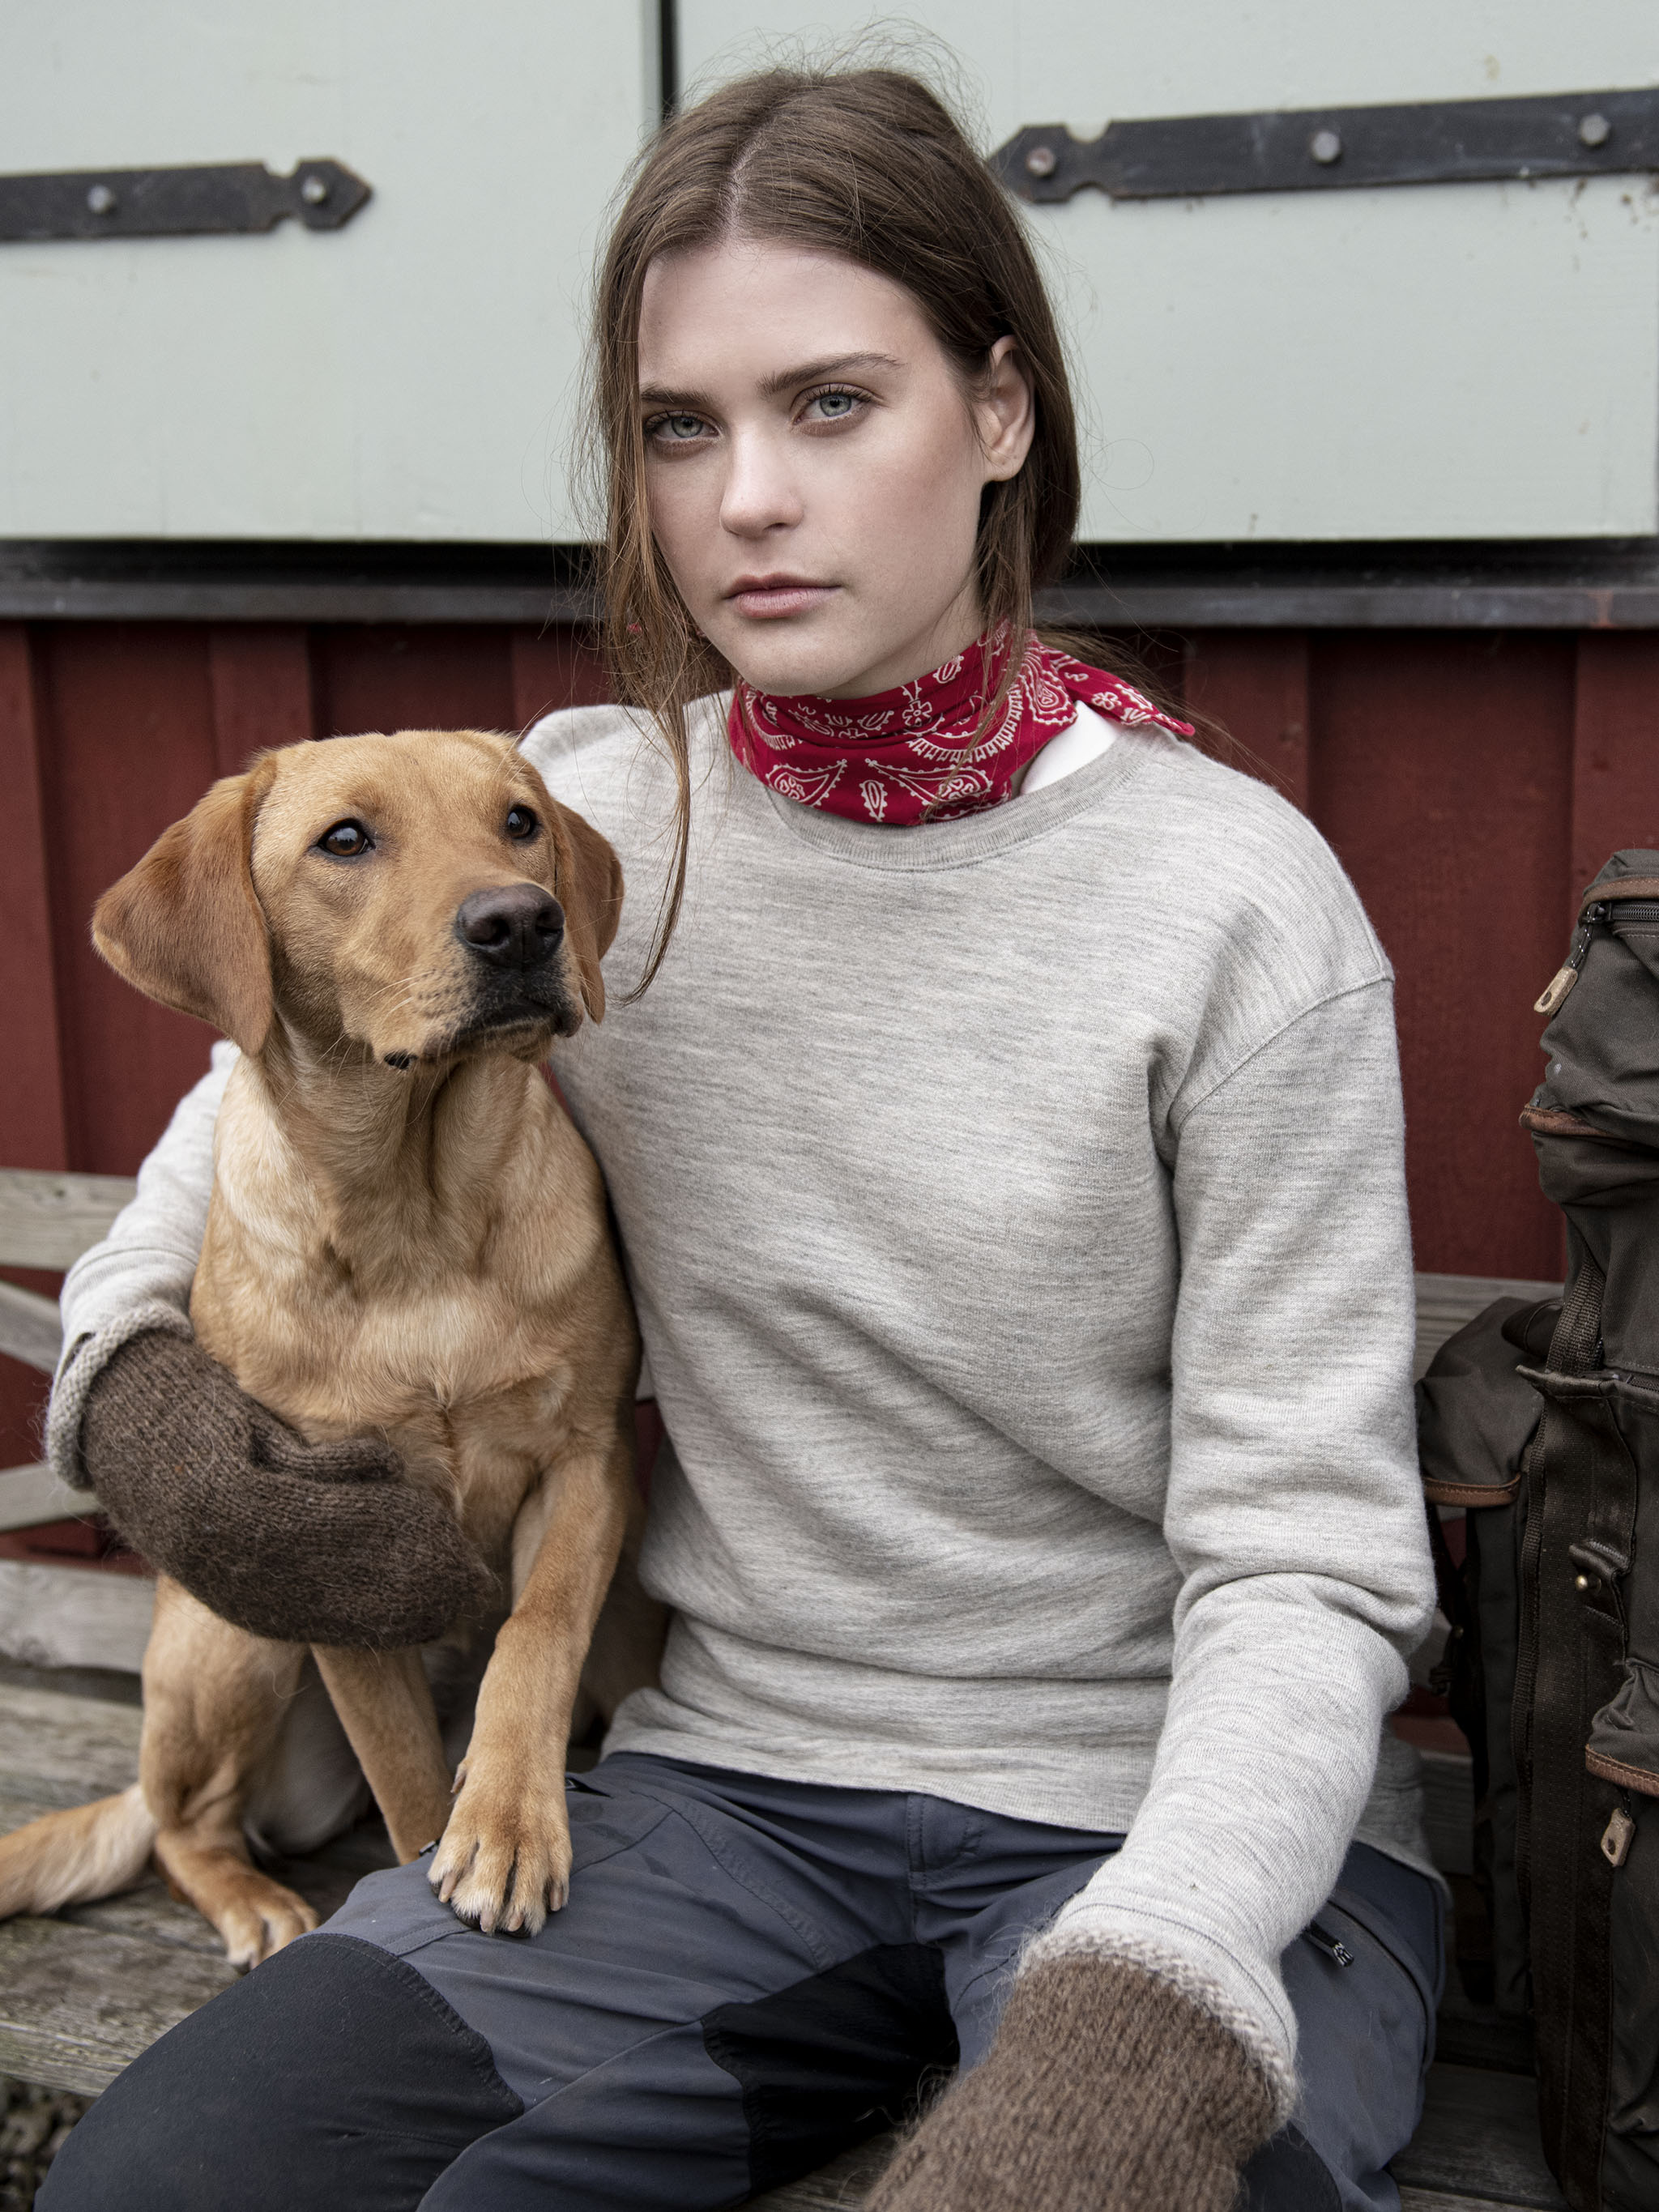 A white Swedish woman with brown hair wearing a woollen grey sweatshirt holding a golden coloured hunting dog, sitting in front of a typical red-painted Swedish house